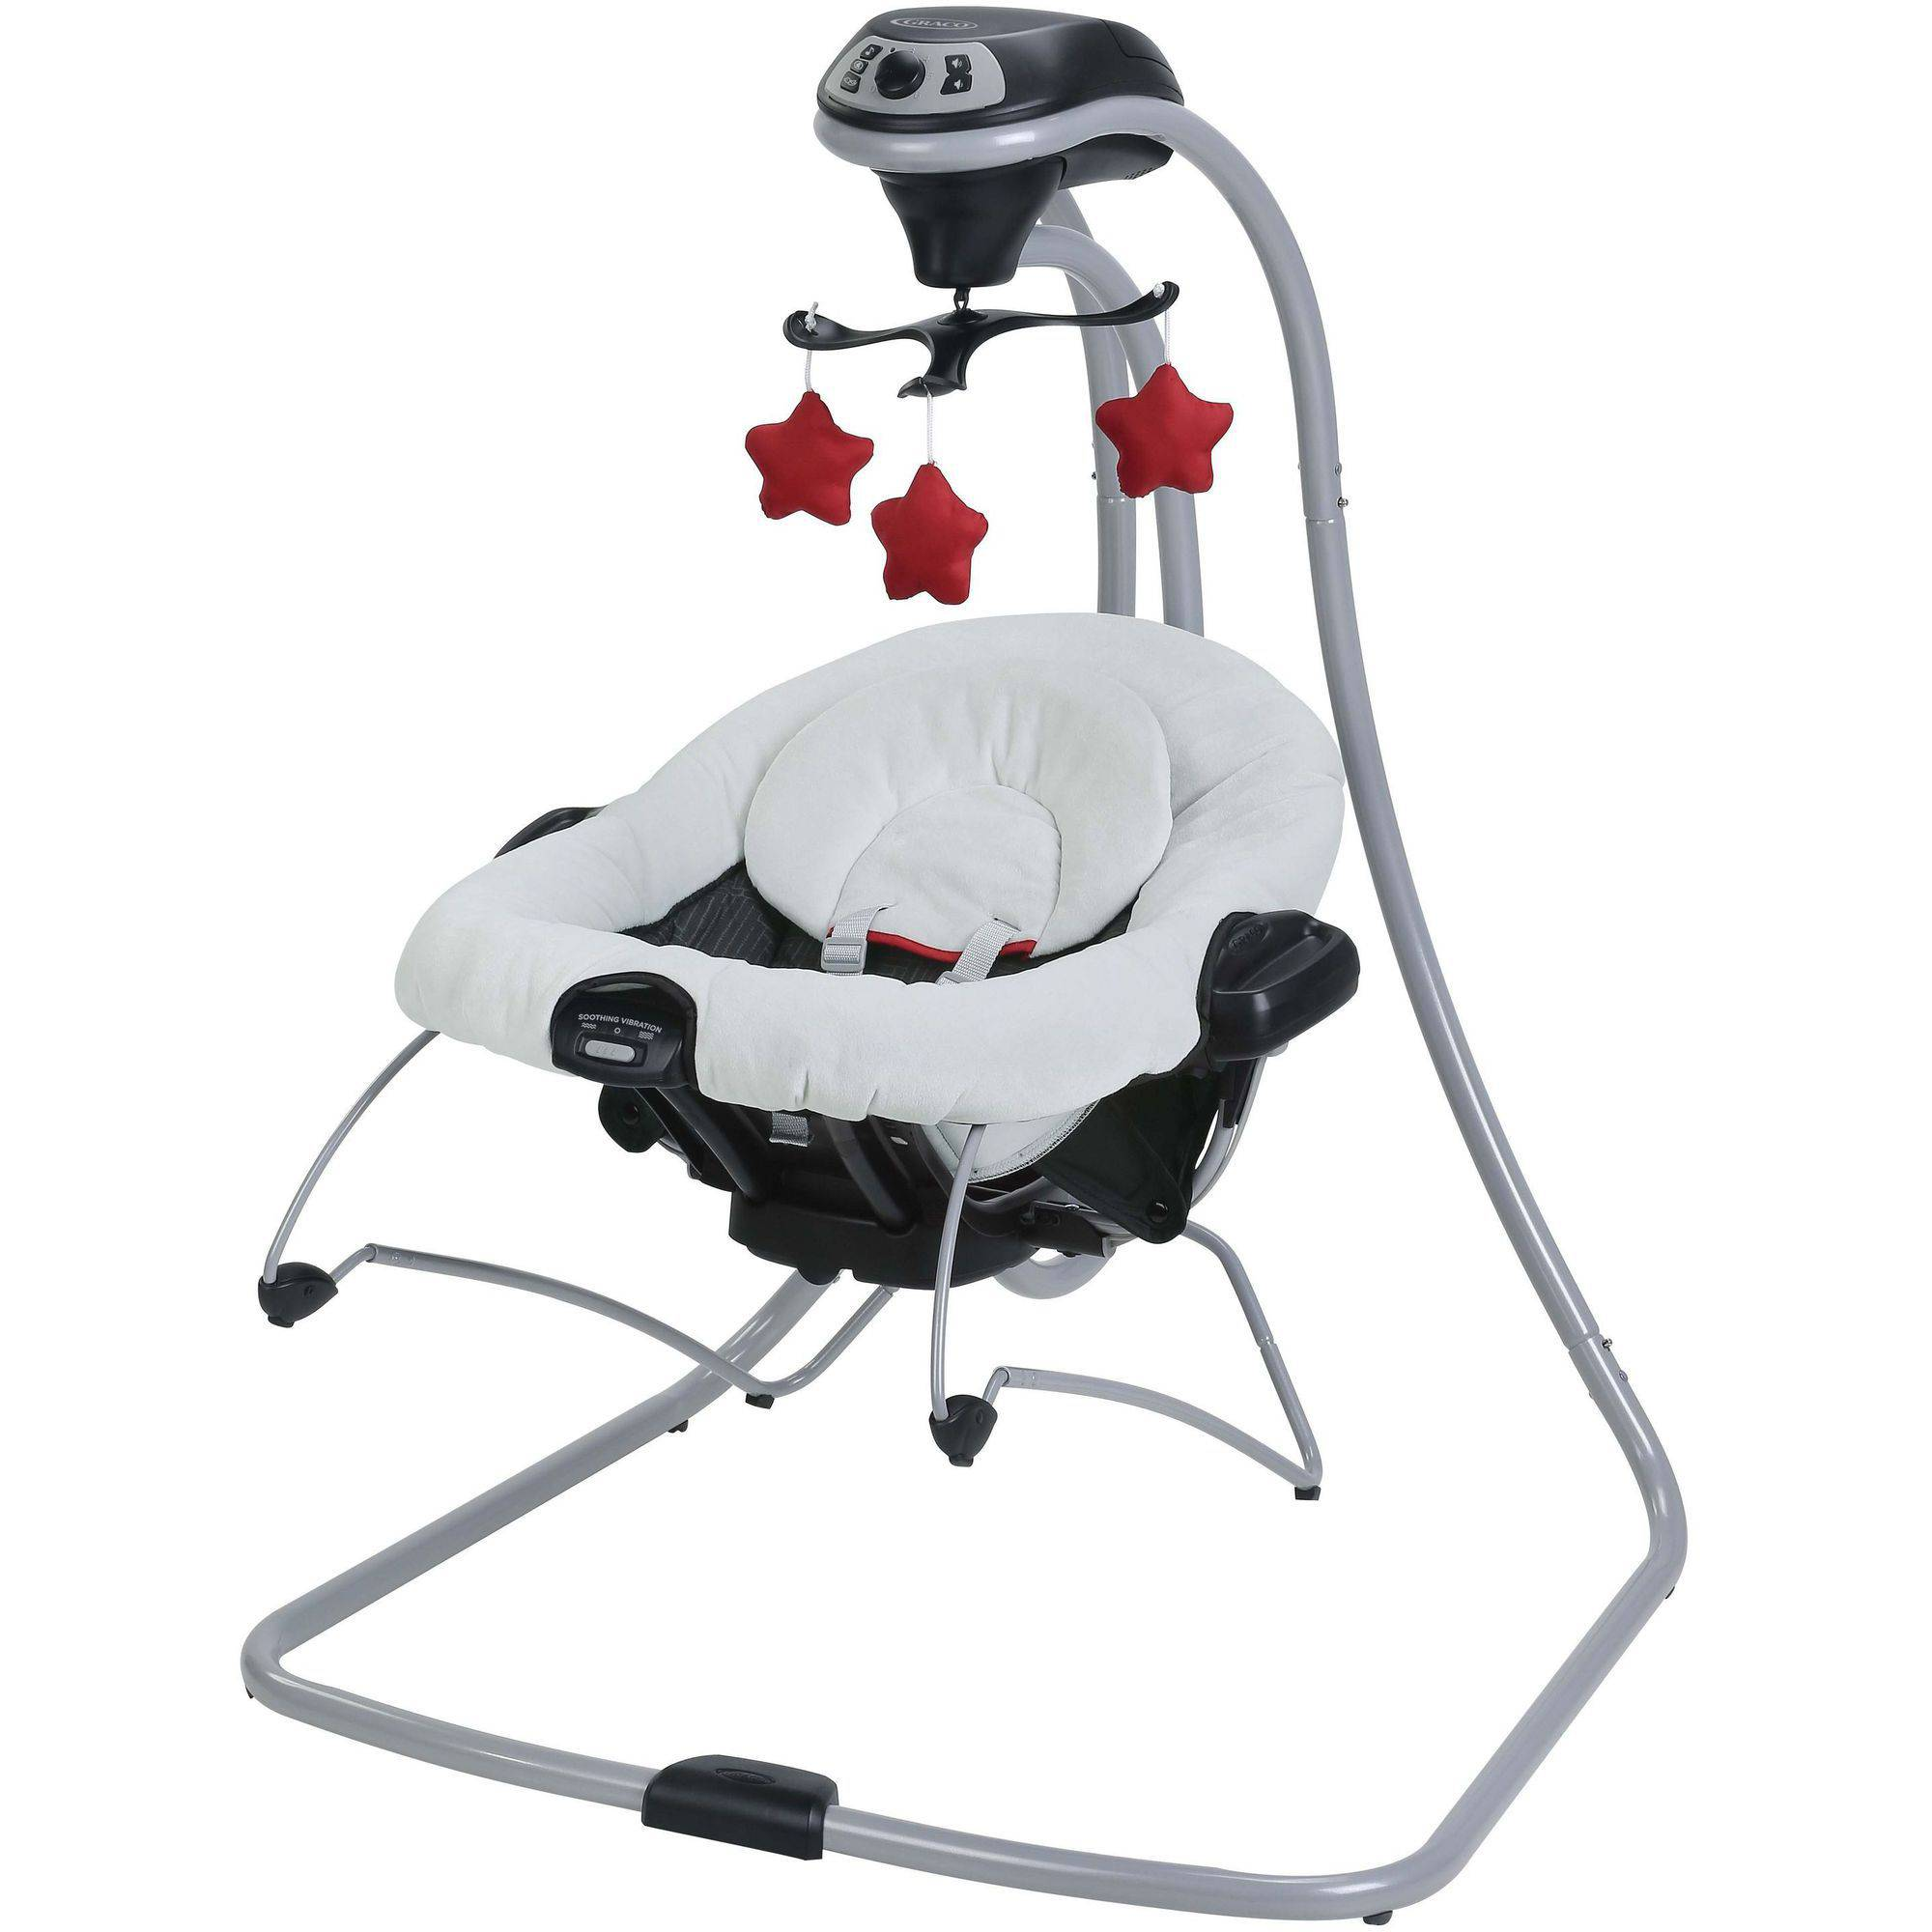 Graco Duet Connect Swing + Bouncer, Weave